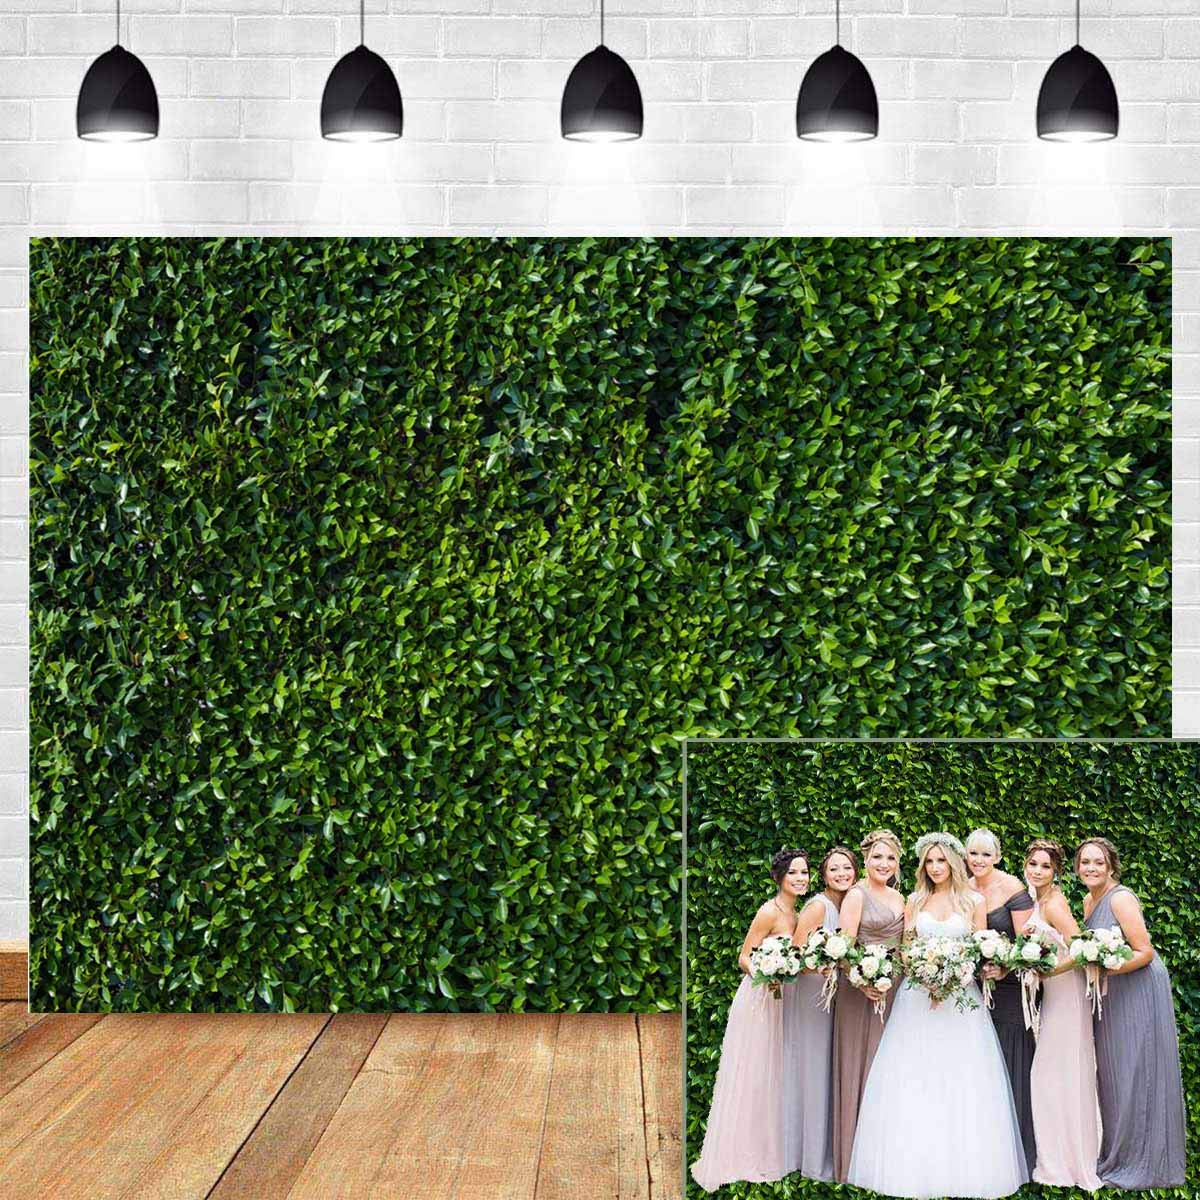 Fanghui 9x6FT Natural Green Leaves Grass Wall Backdrop for Photography Spring Summer Wedding Birthday Party Banner Supplies Outdoorsy Theme Photo Studio Booth Props. by Fanghui